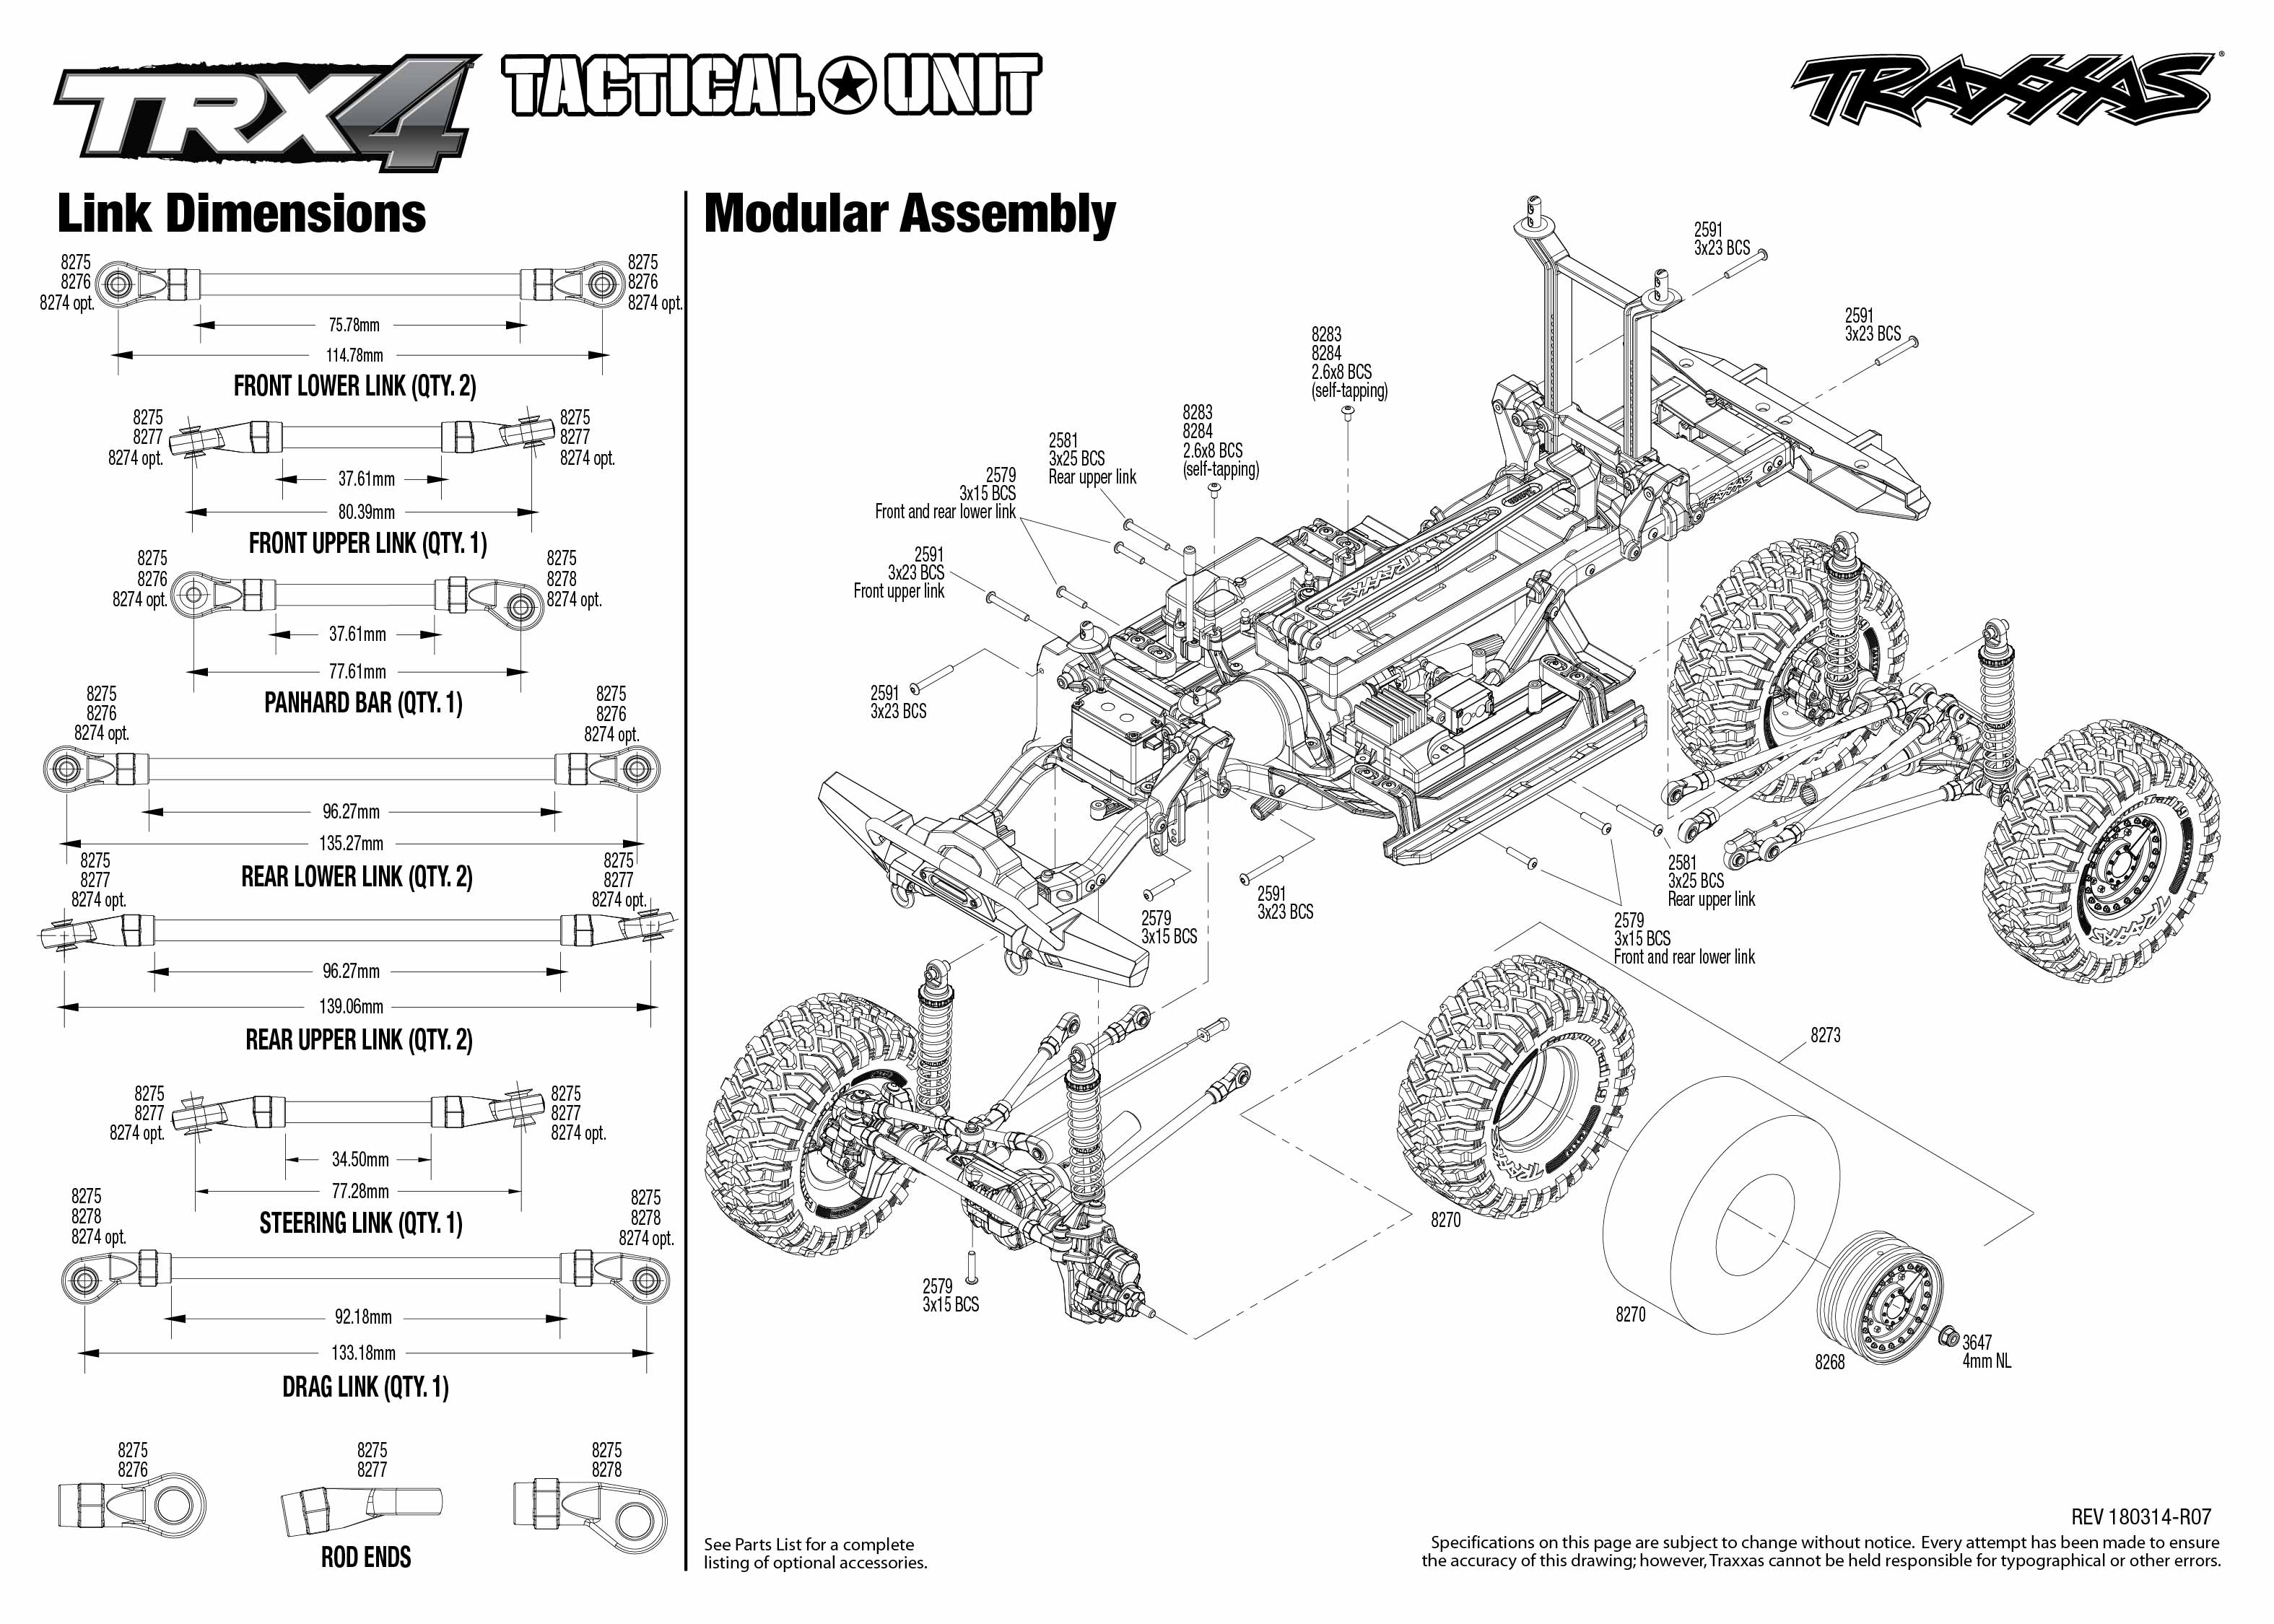 Trx 4 Tactical Unit 4 Modular Assembly Exploded View